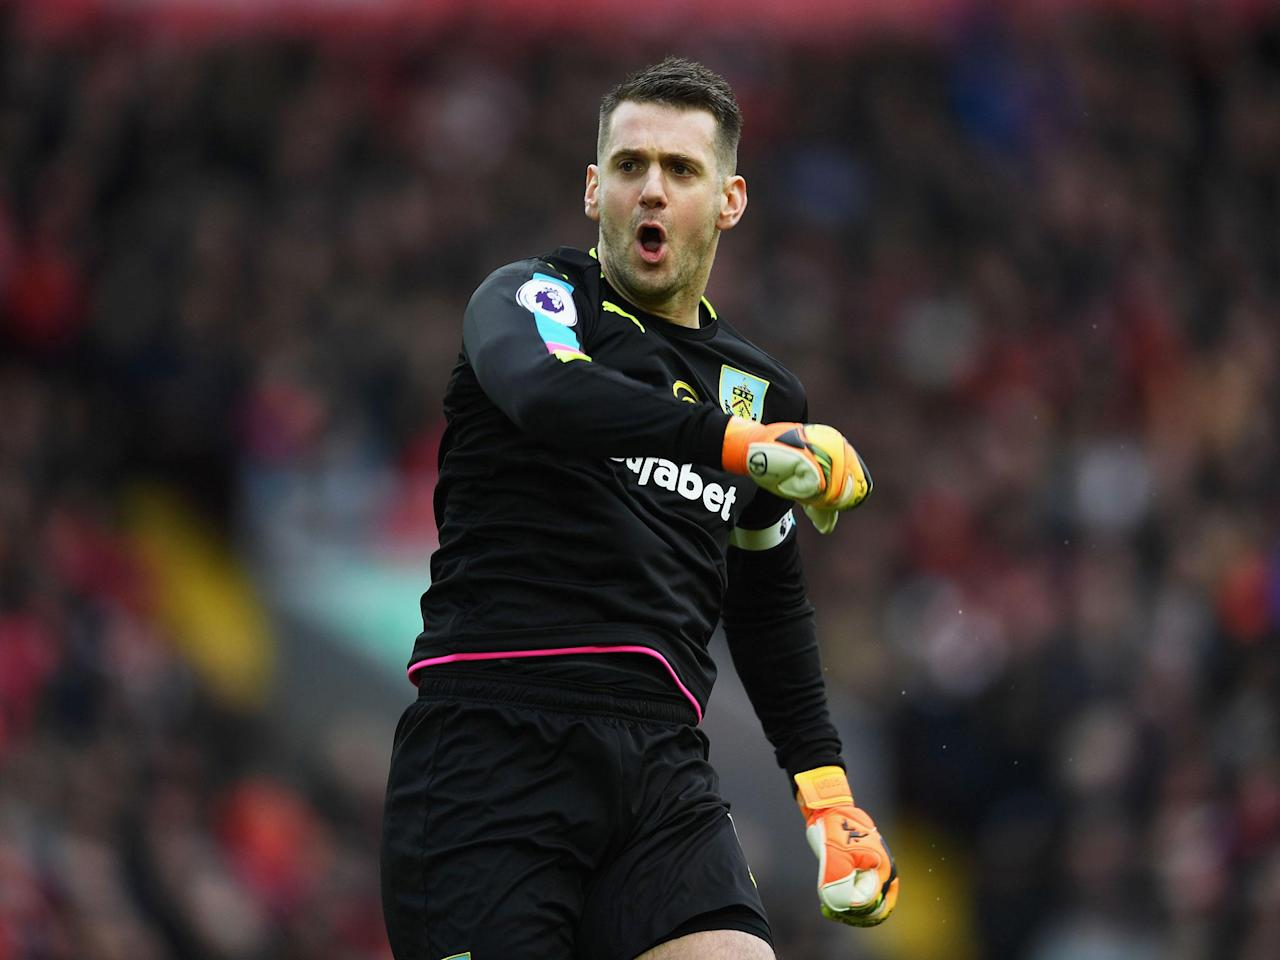 Tom Heaton denies Sunderland late winner to leave David Moyes' men mired in relegation trouble